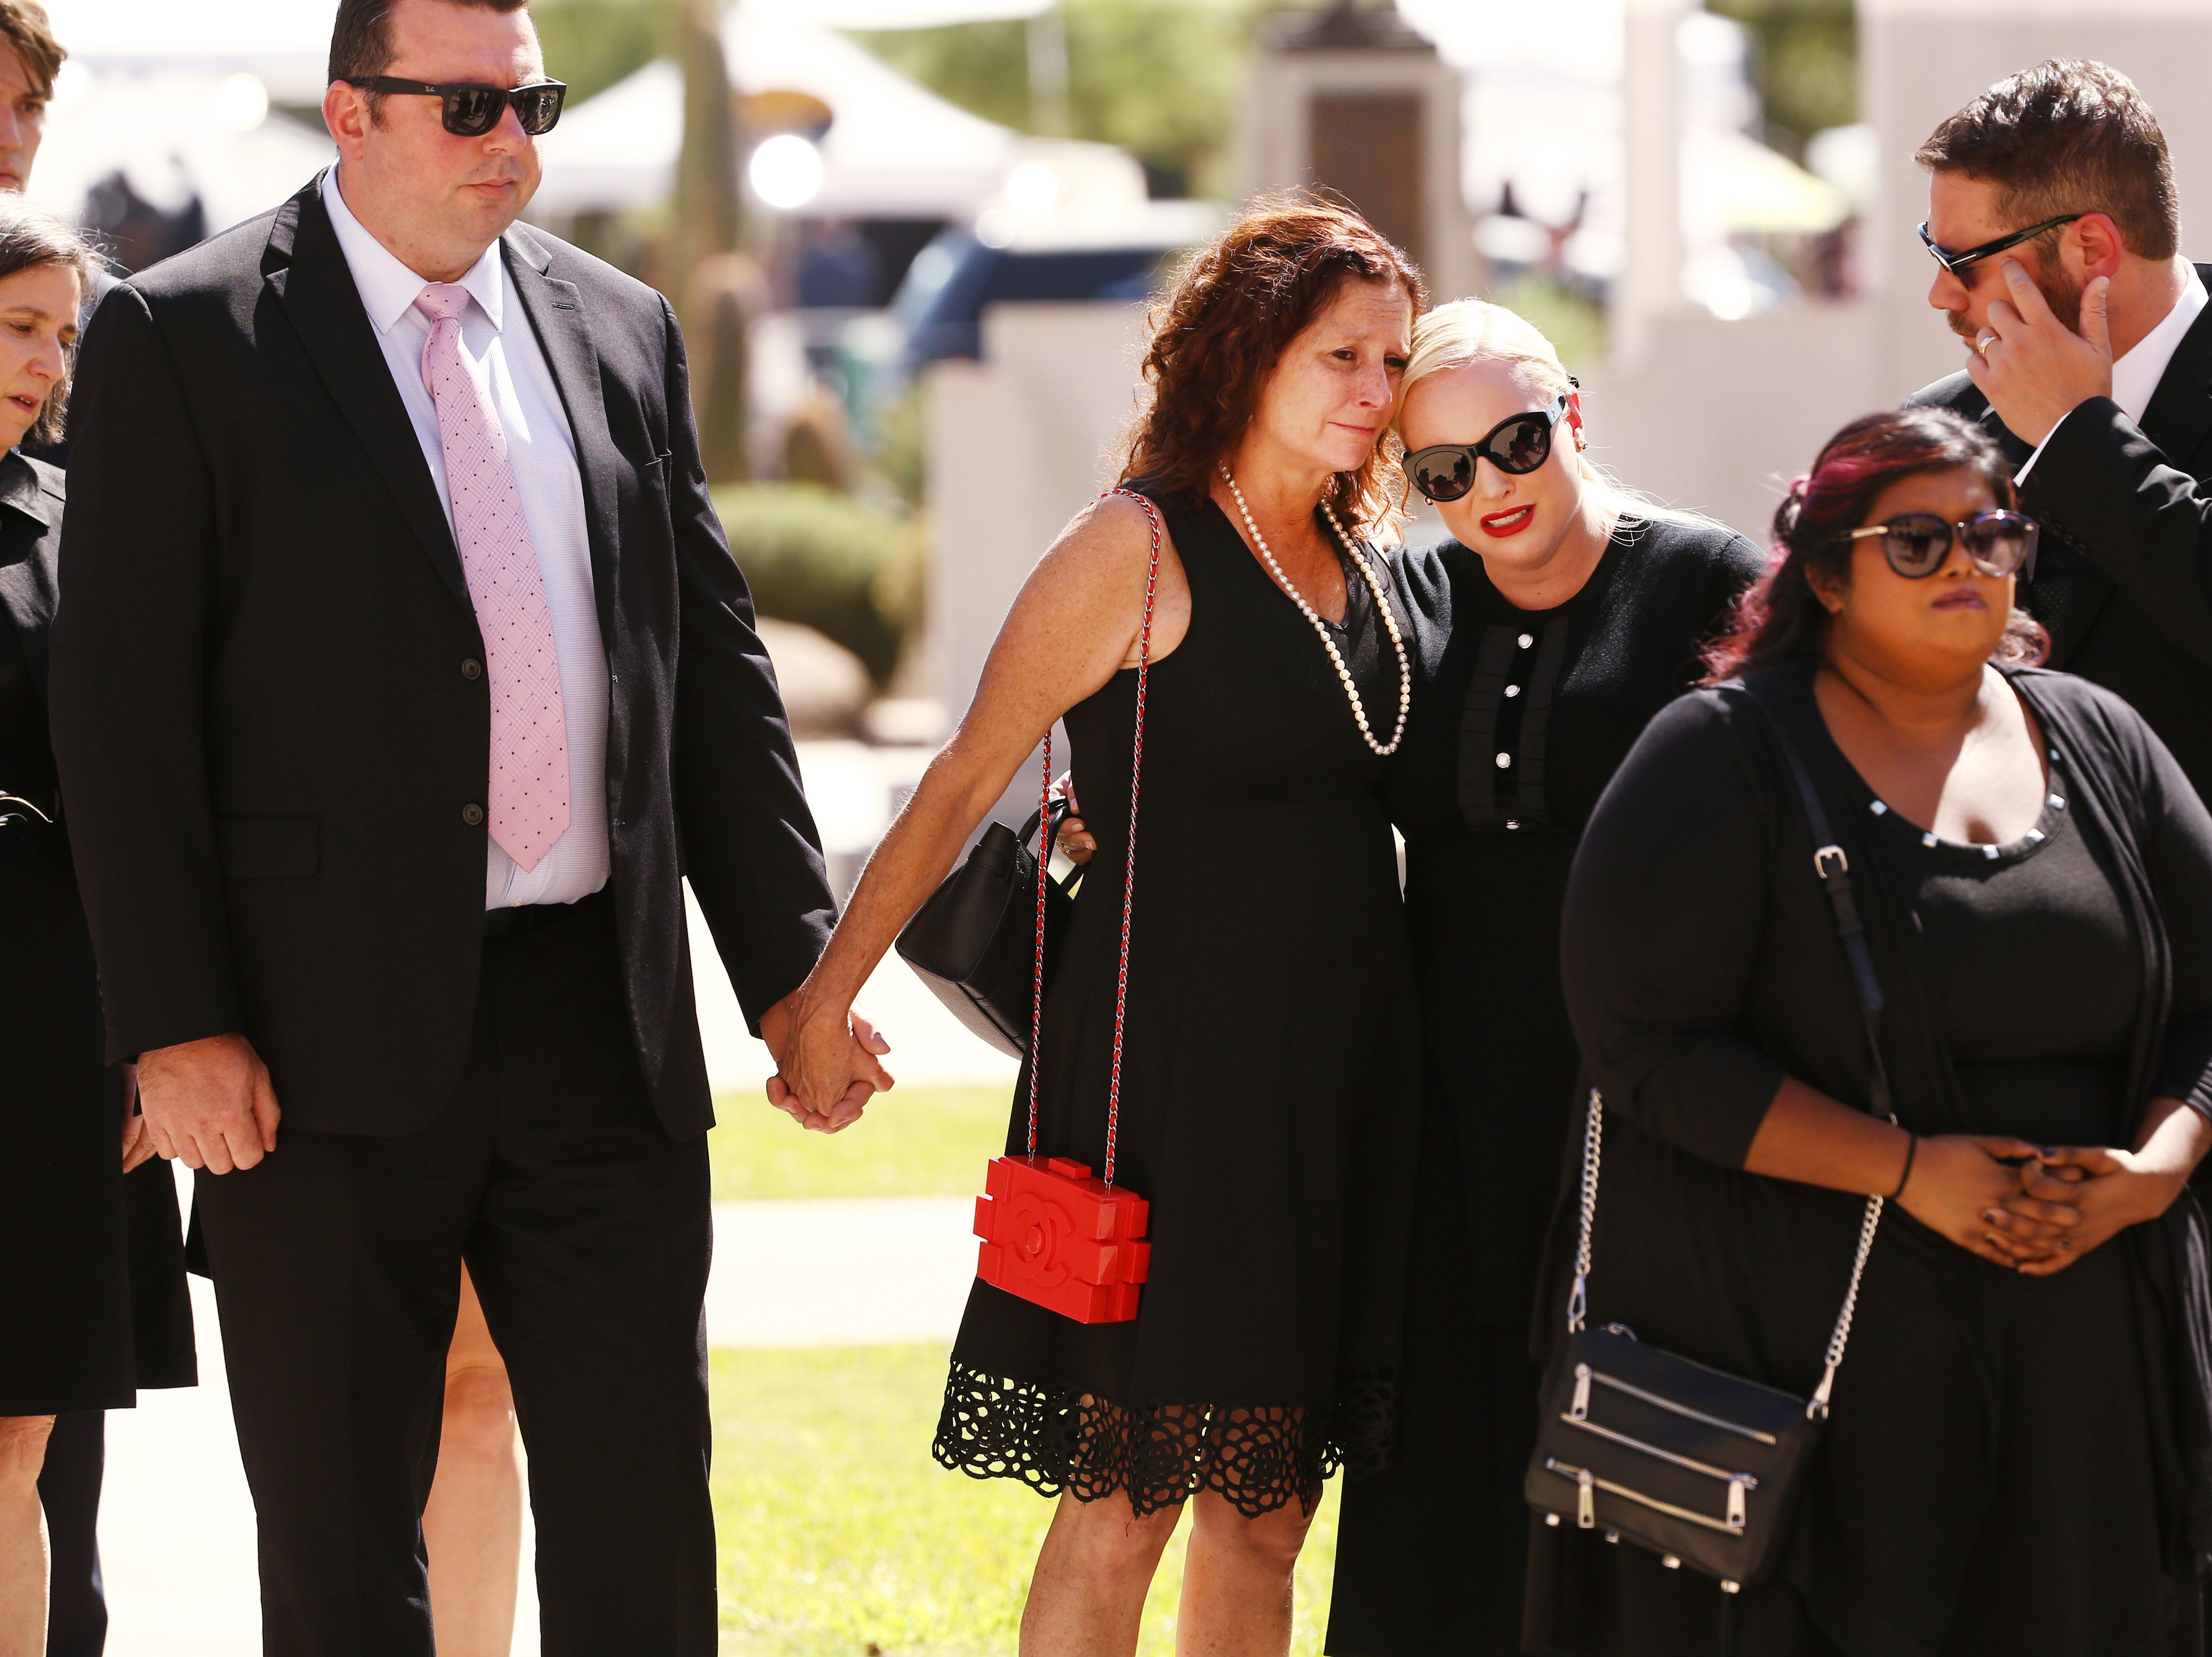 Daughters Sidney McCain, Meghan McCain and Bridget McCain, right, follow the casket of their father U.S. Sen. John McCain for his memorial service at the Arizona State Capitol.